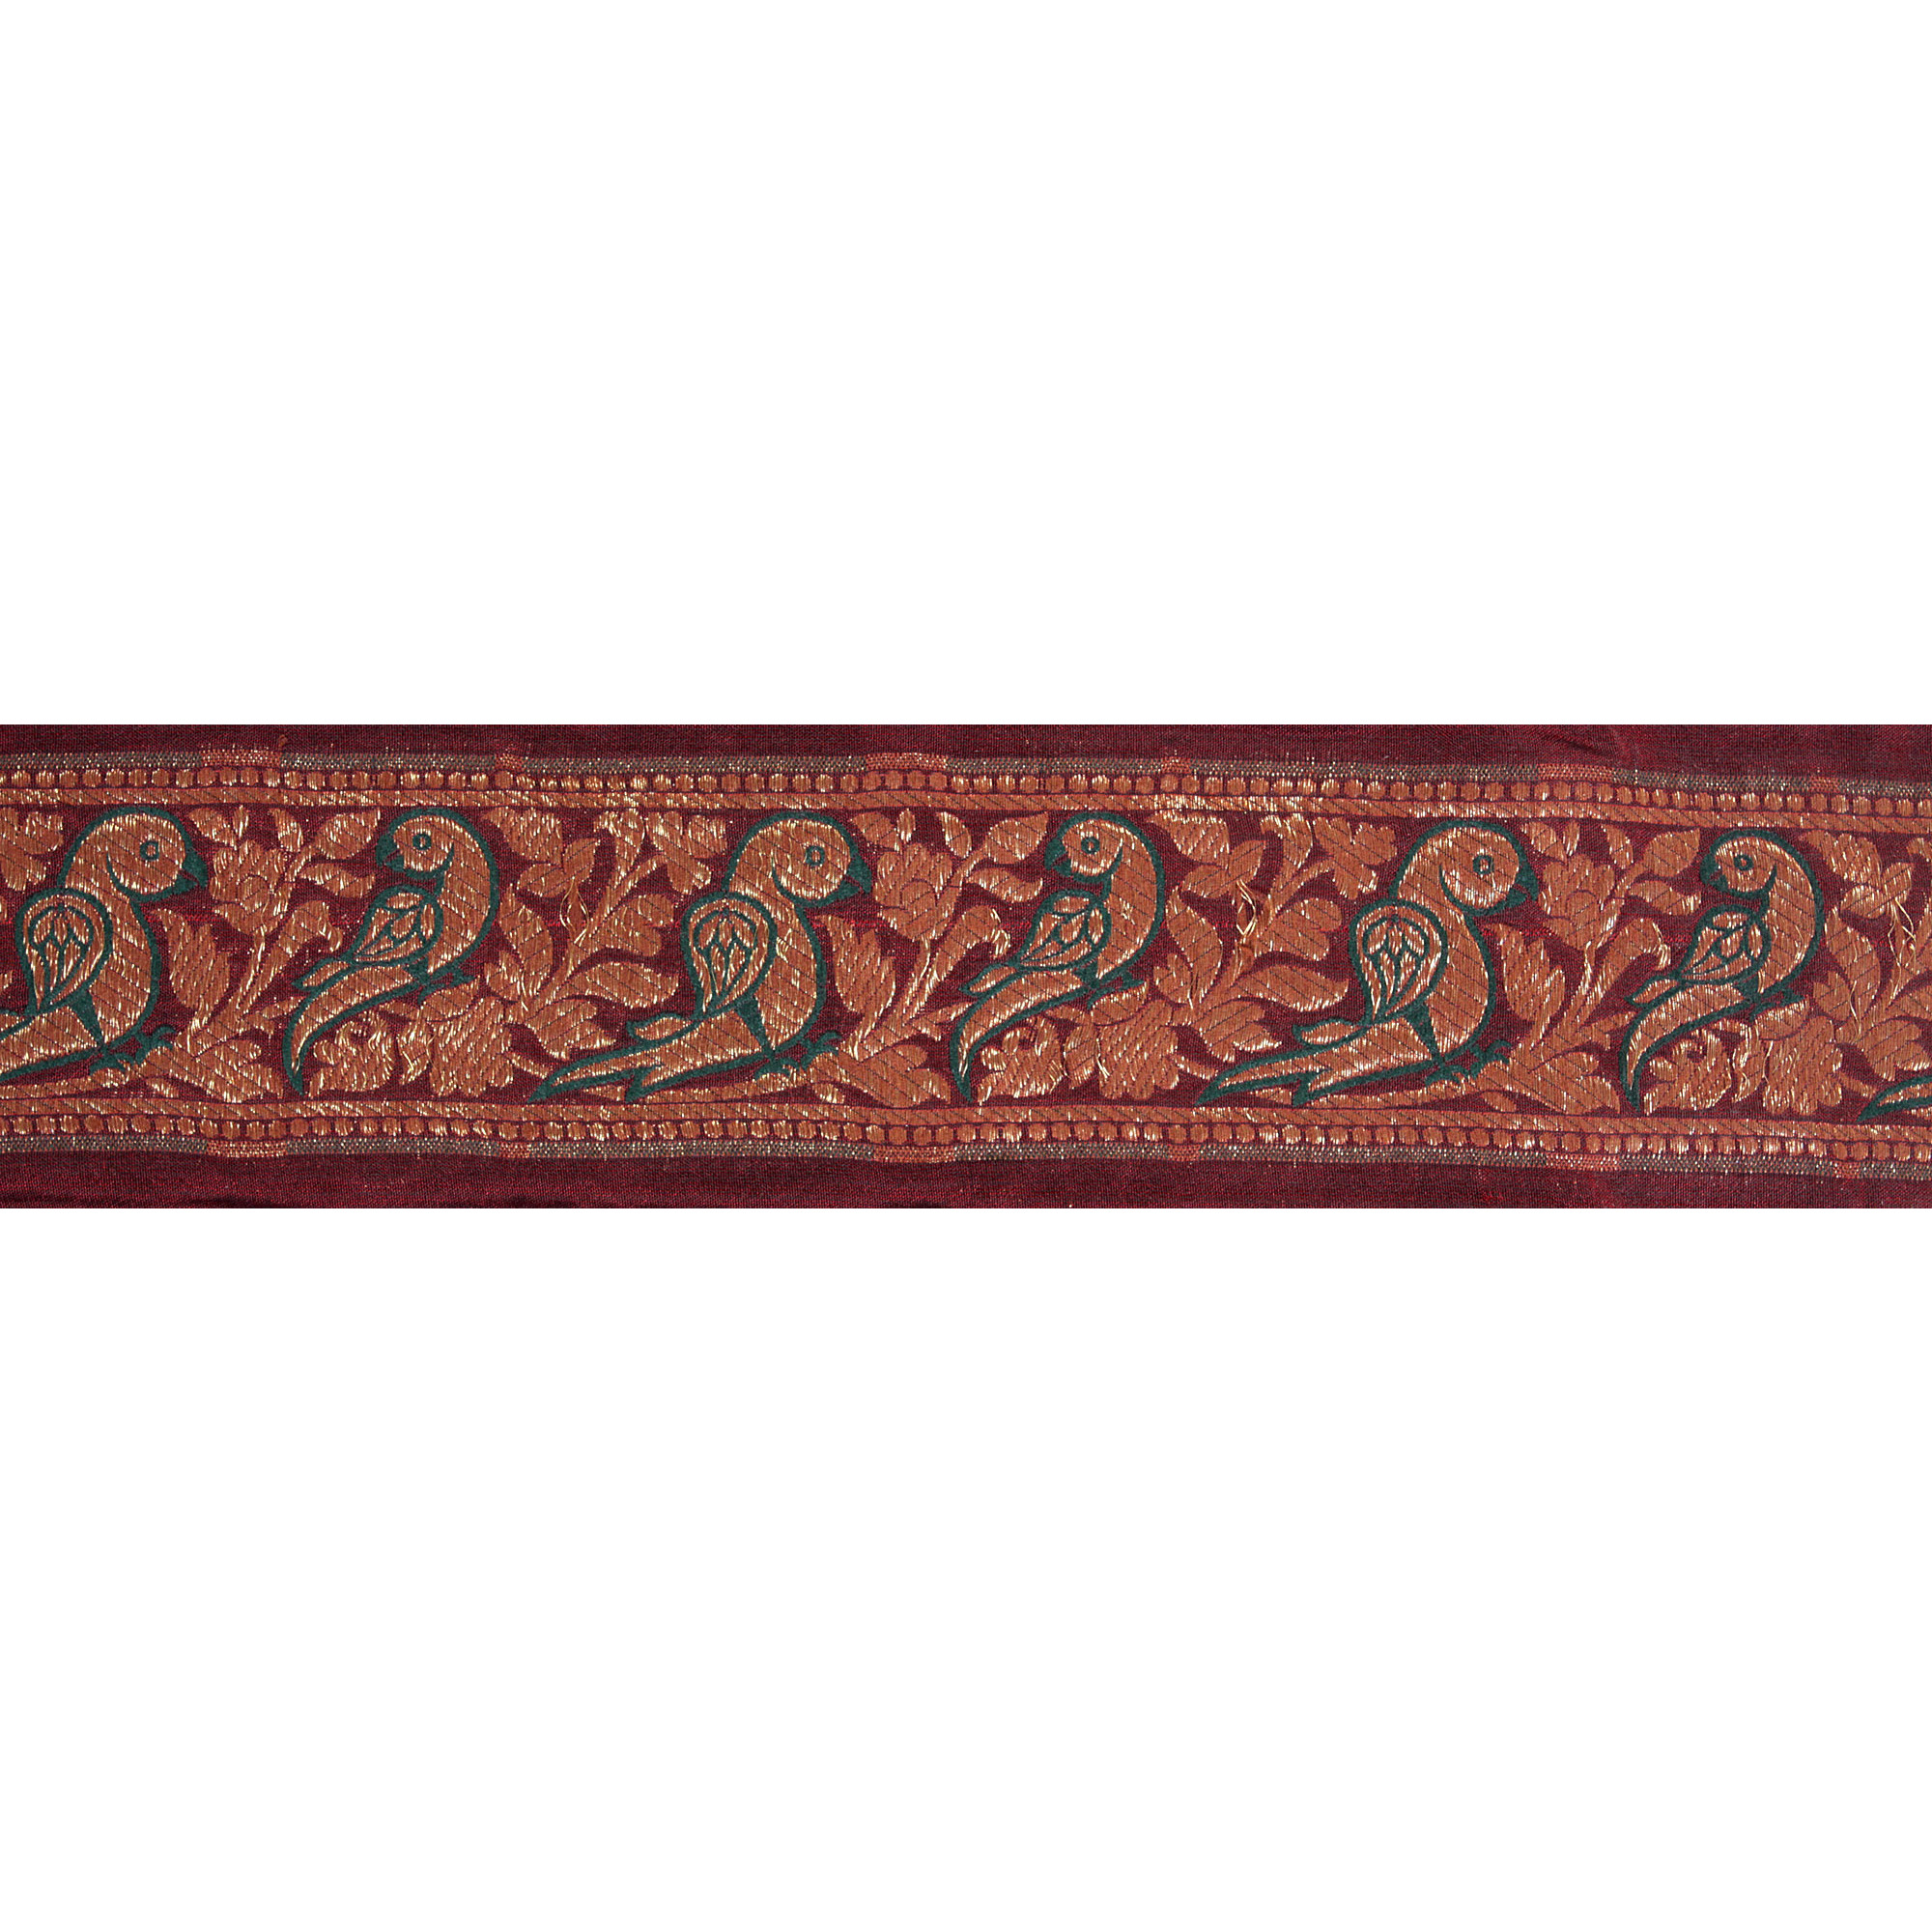 Maroon Banarasi Fabric Border with Woven Parrots in Golden Thread